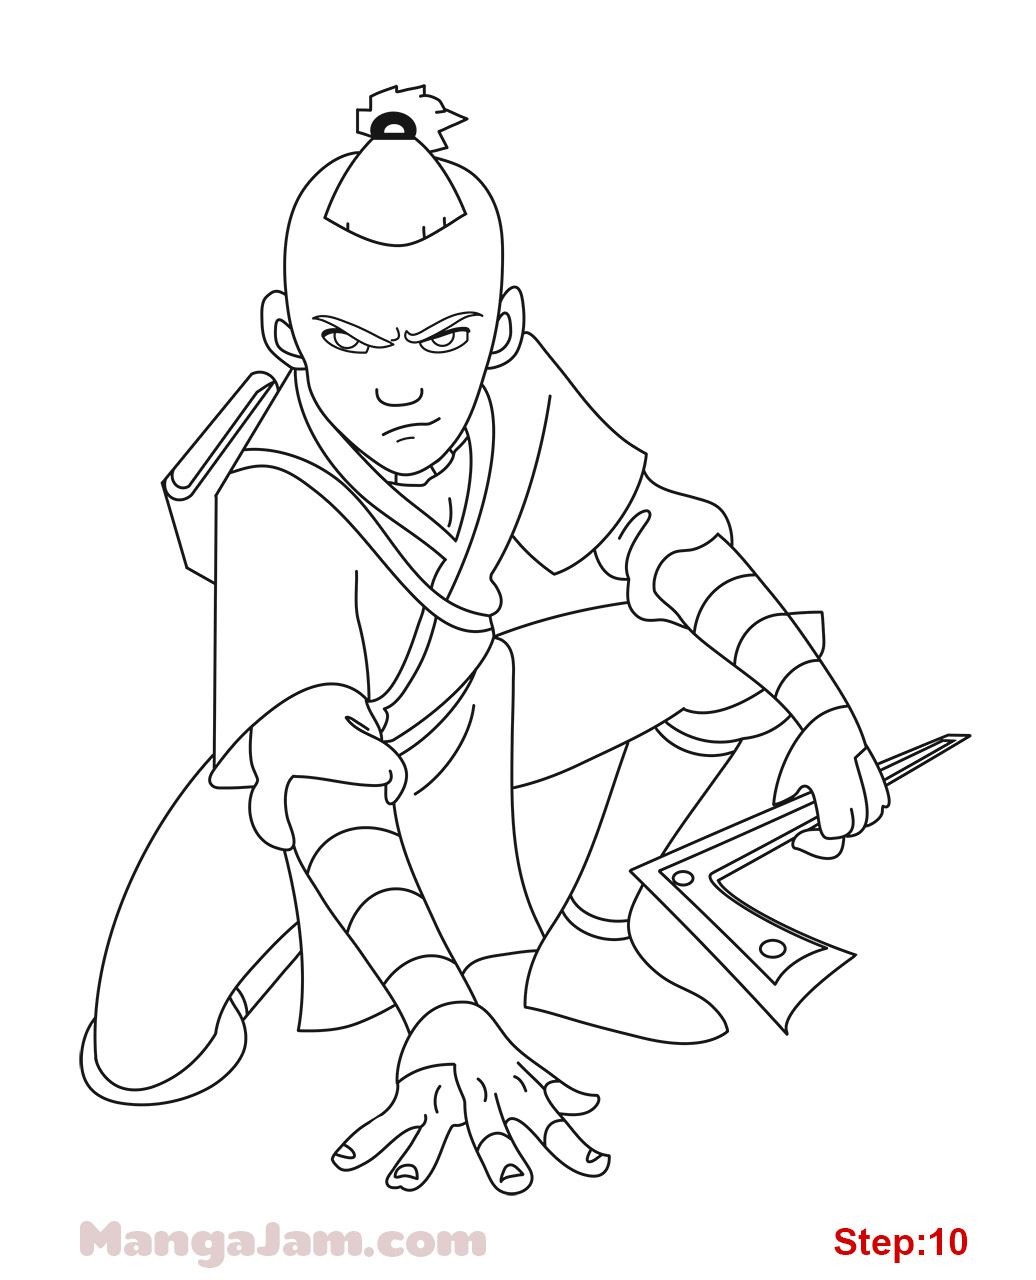 How to Draw Sokka from Avatar in 2020